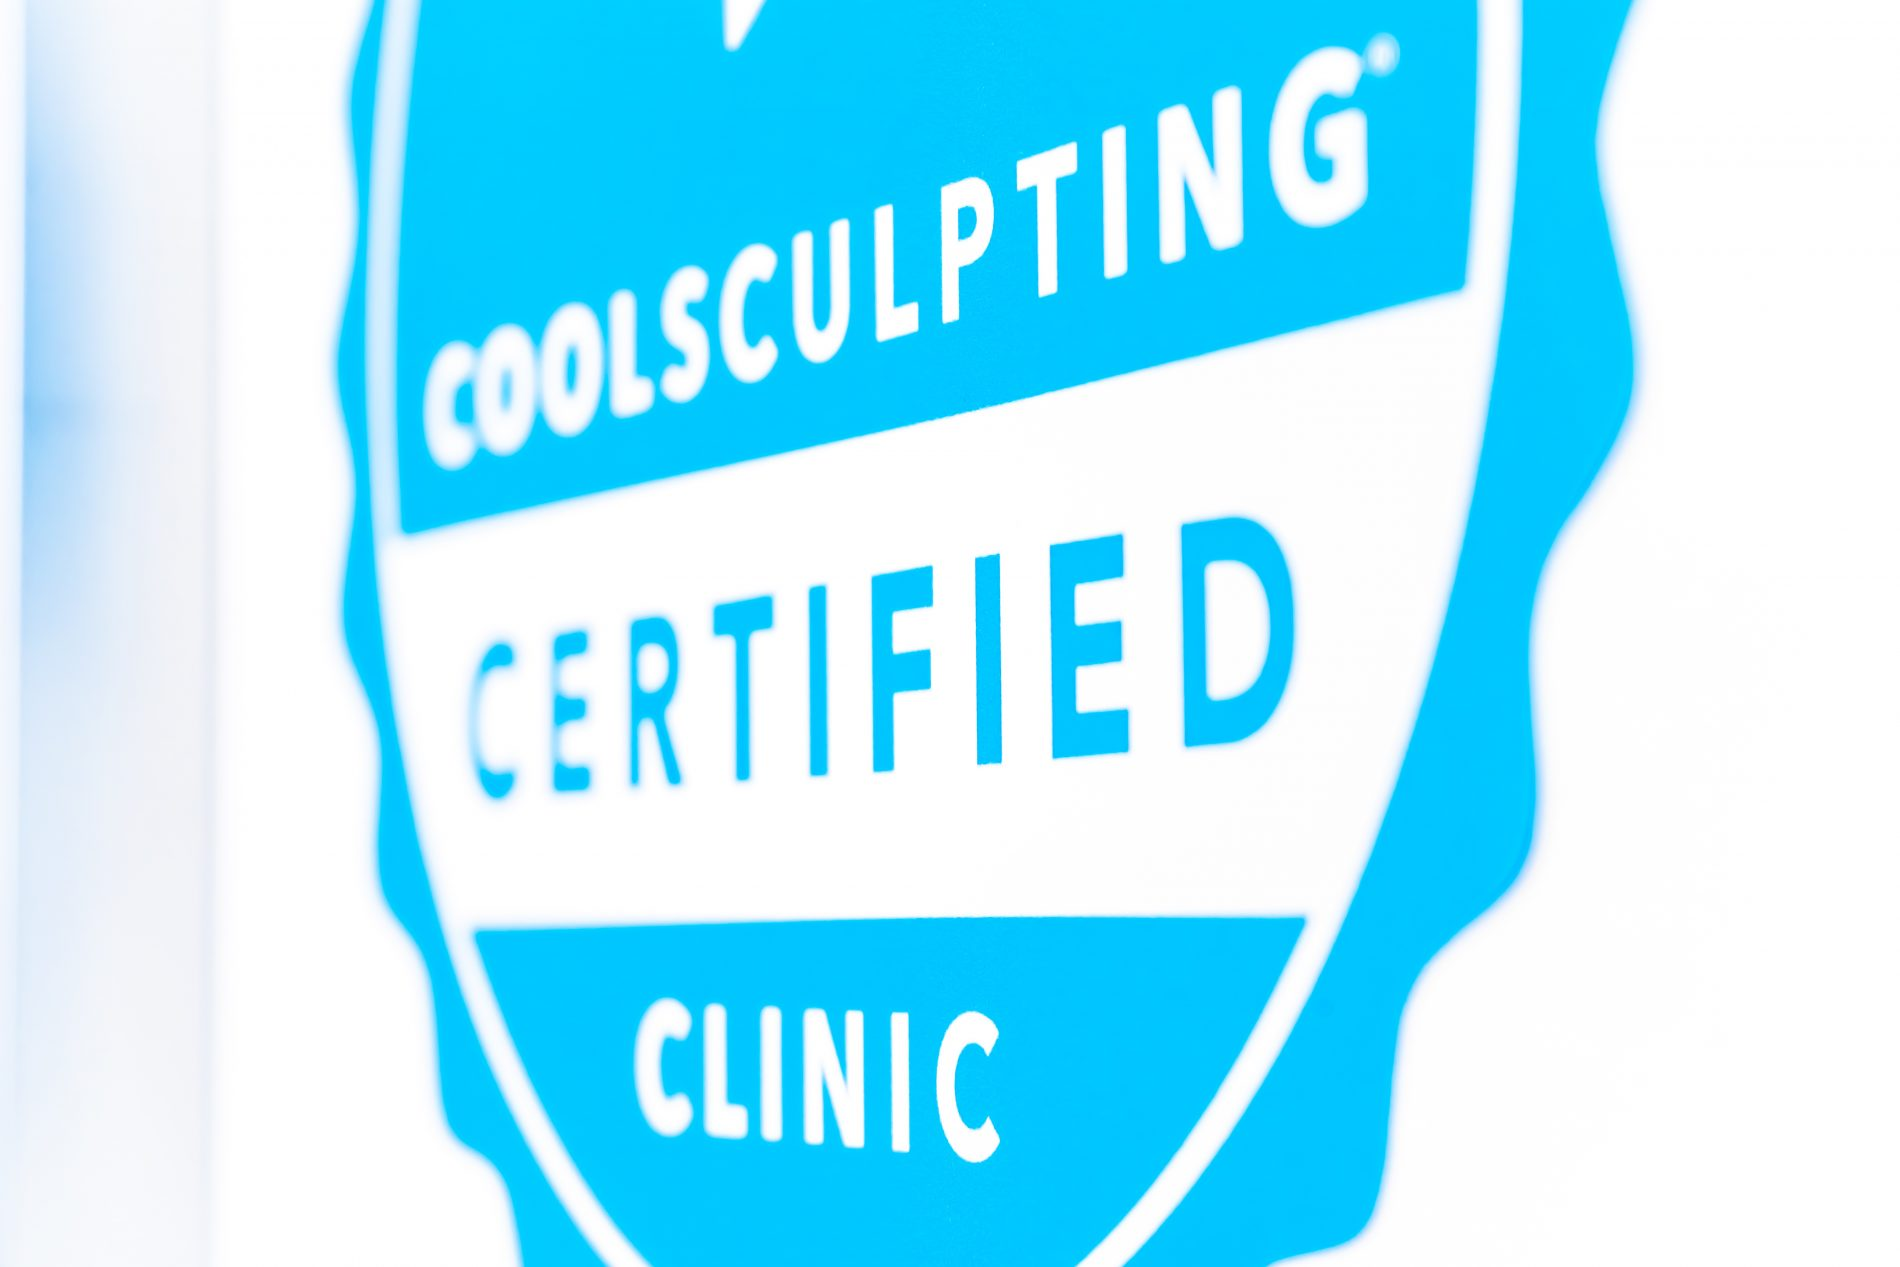 Coolsculpting certified badge decal displayed at a beauty laser clinic offering cryolipolysis cosmetic fat removal.